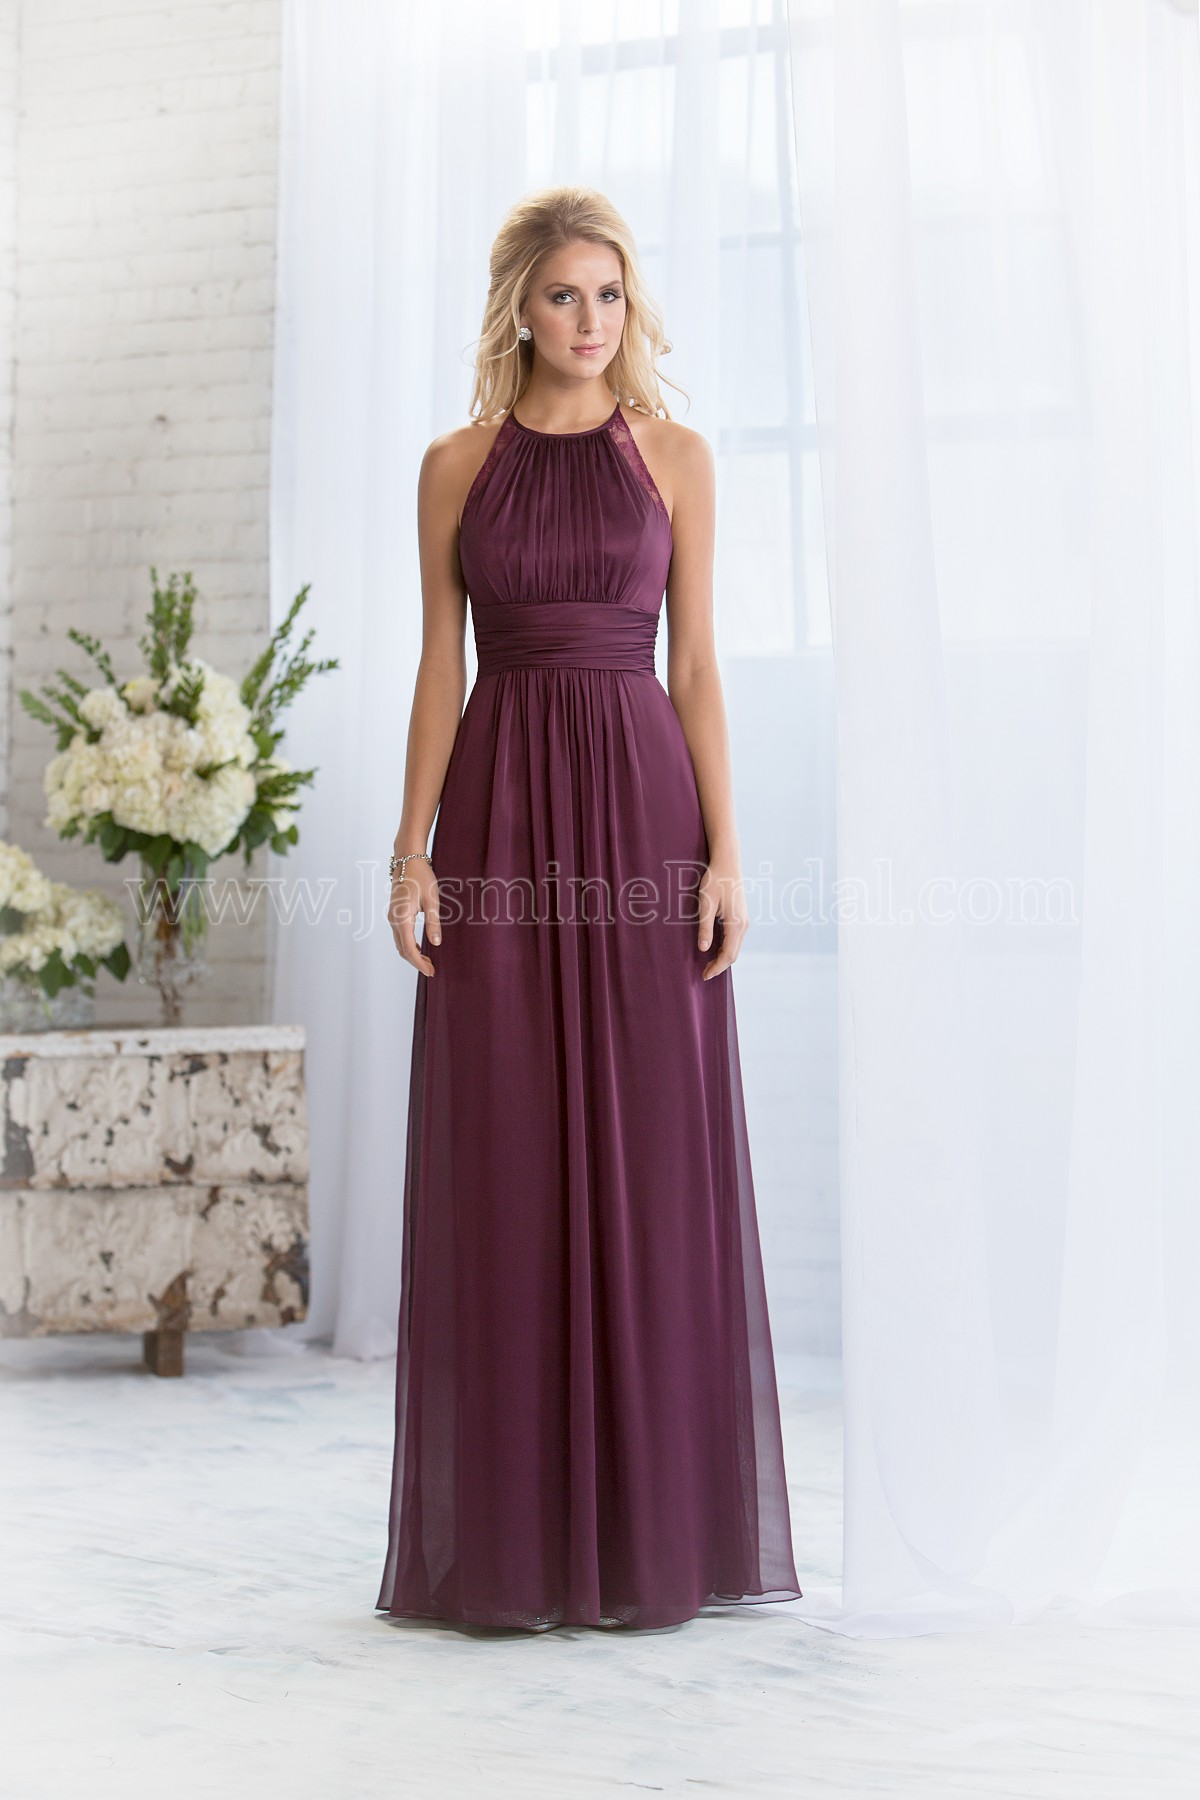 One Strap Purple Bridesmaid Dresses